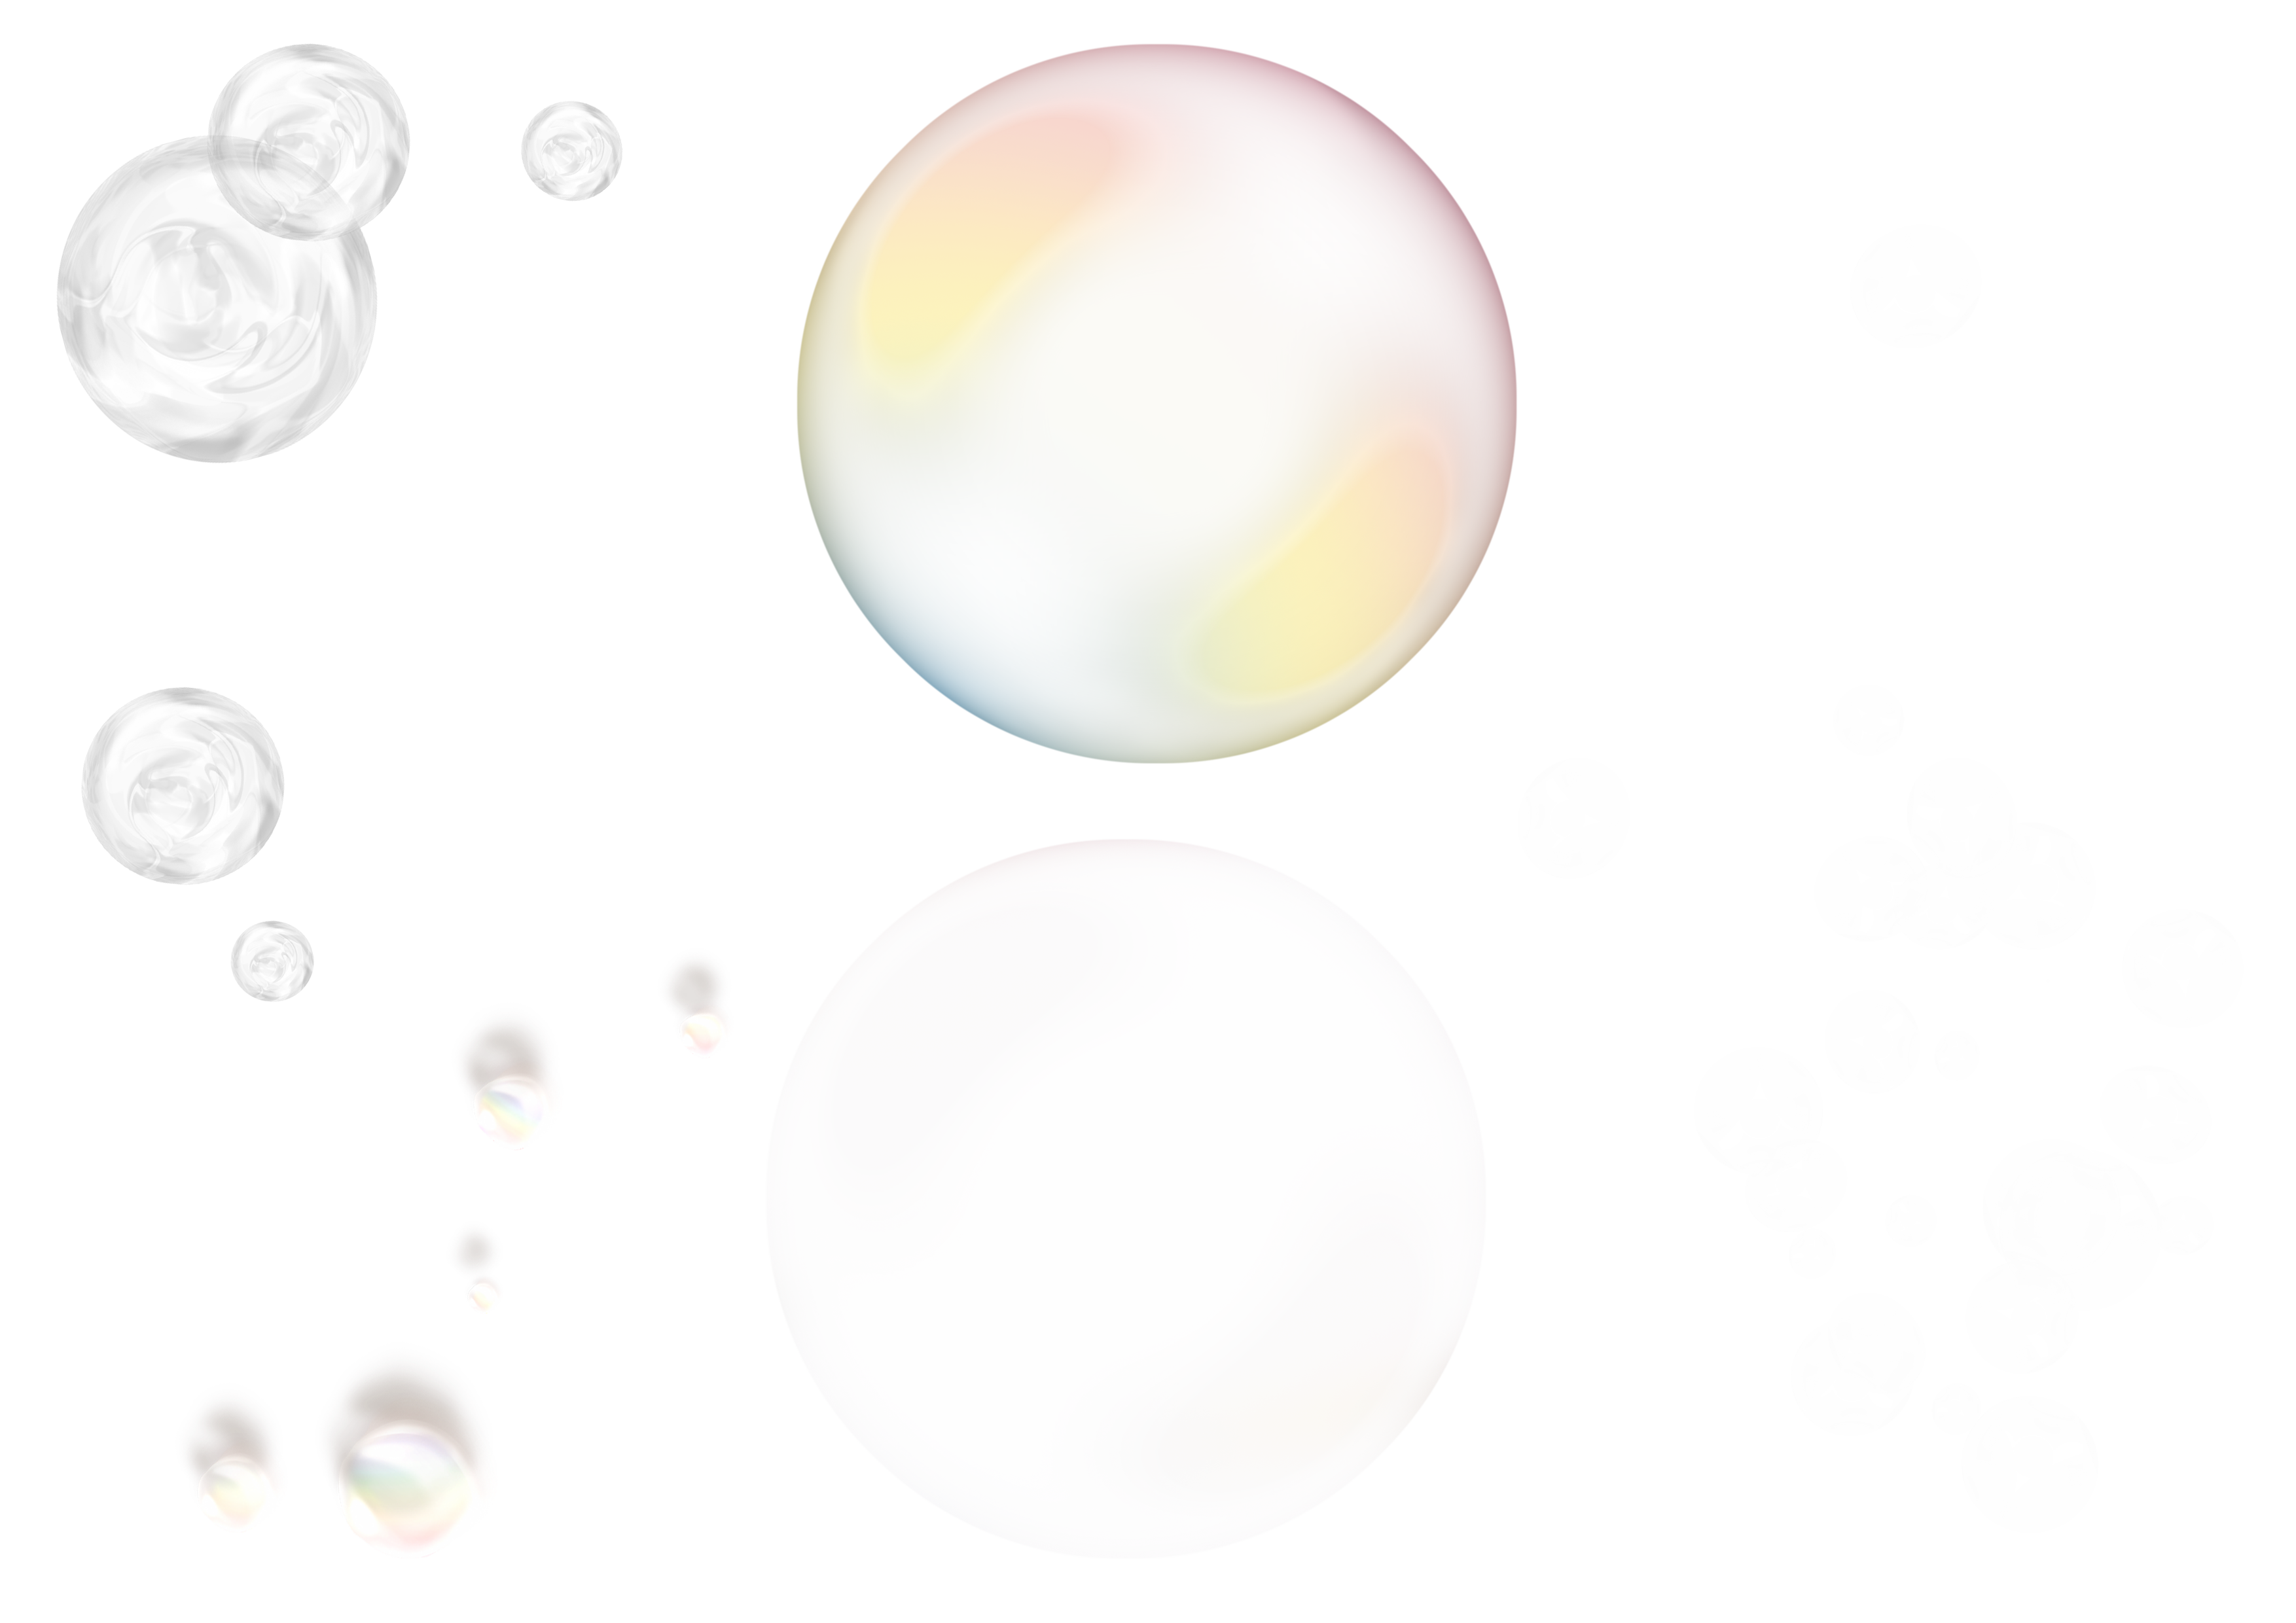 Free bubble overlay clipart image library download free Bubbles Photoshop Overlays: Realistic Soap air bubble Photo ... image library download